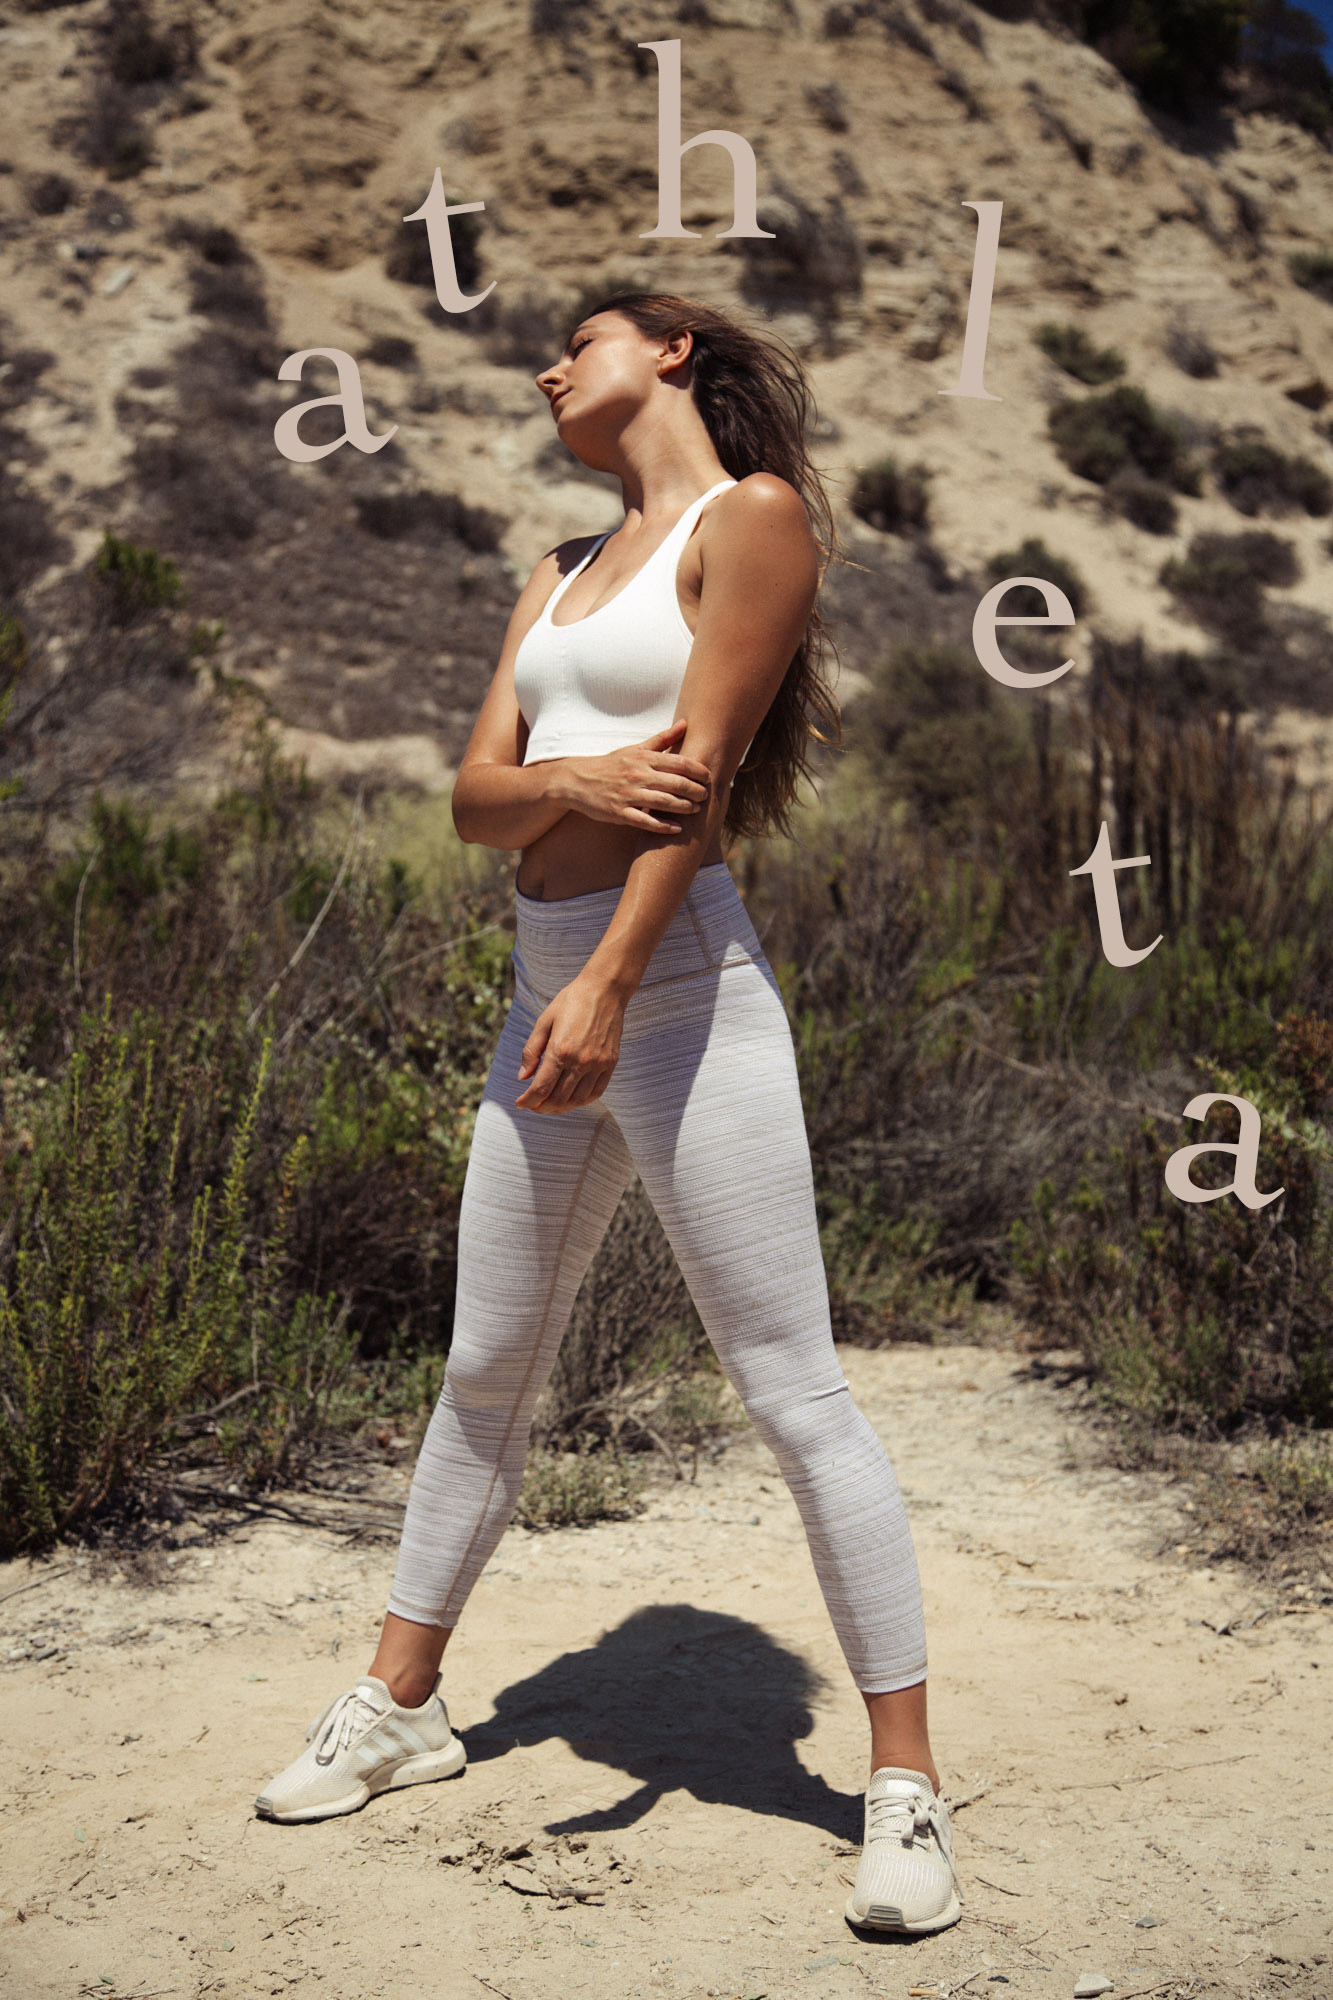 ATHLETA-7 logo.jpg